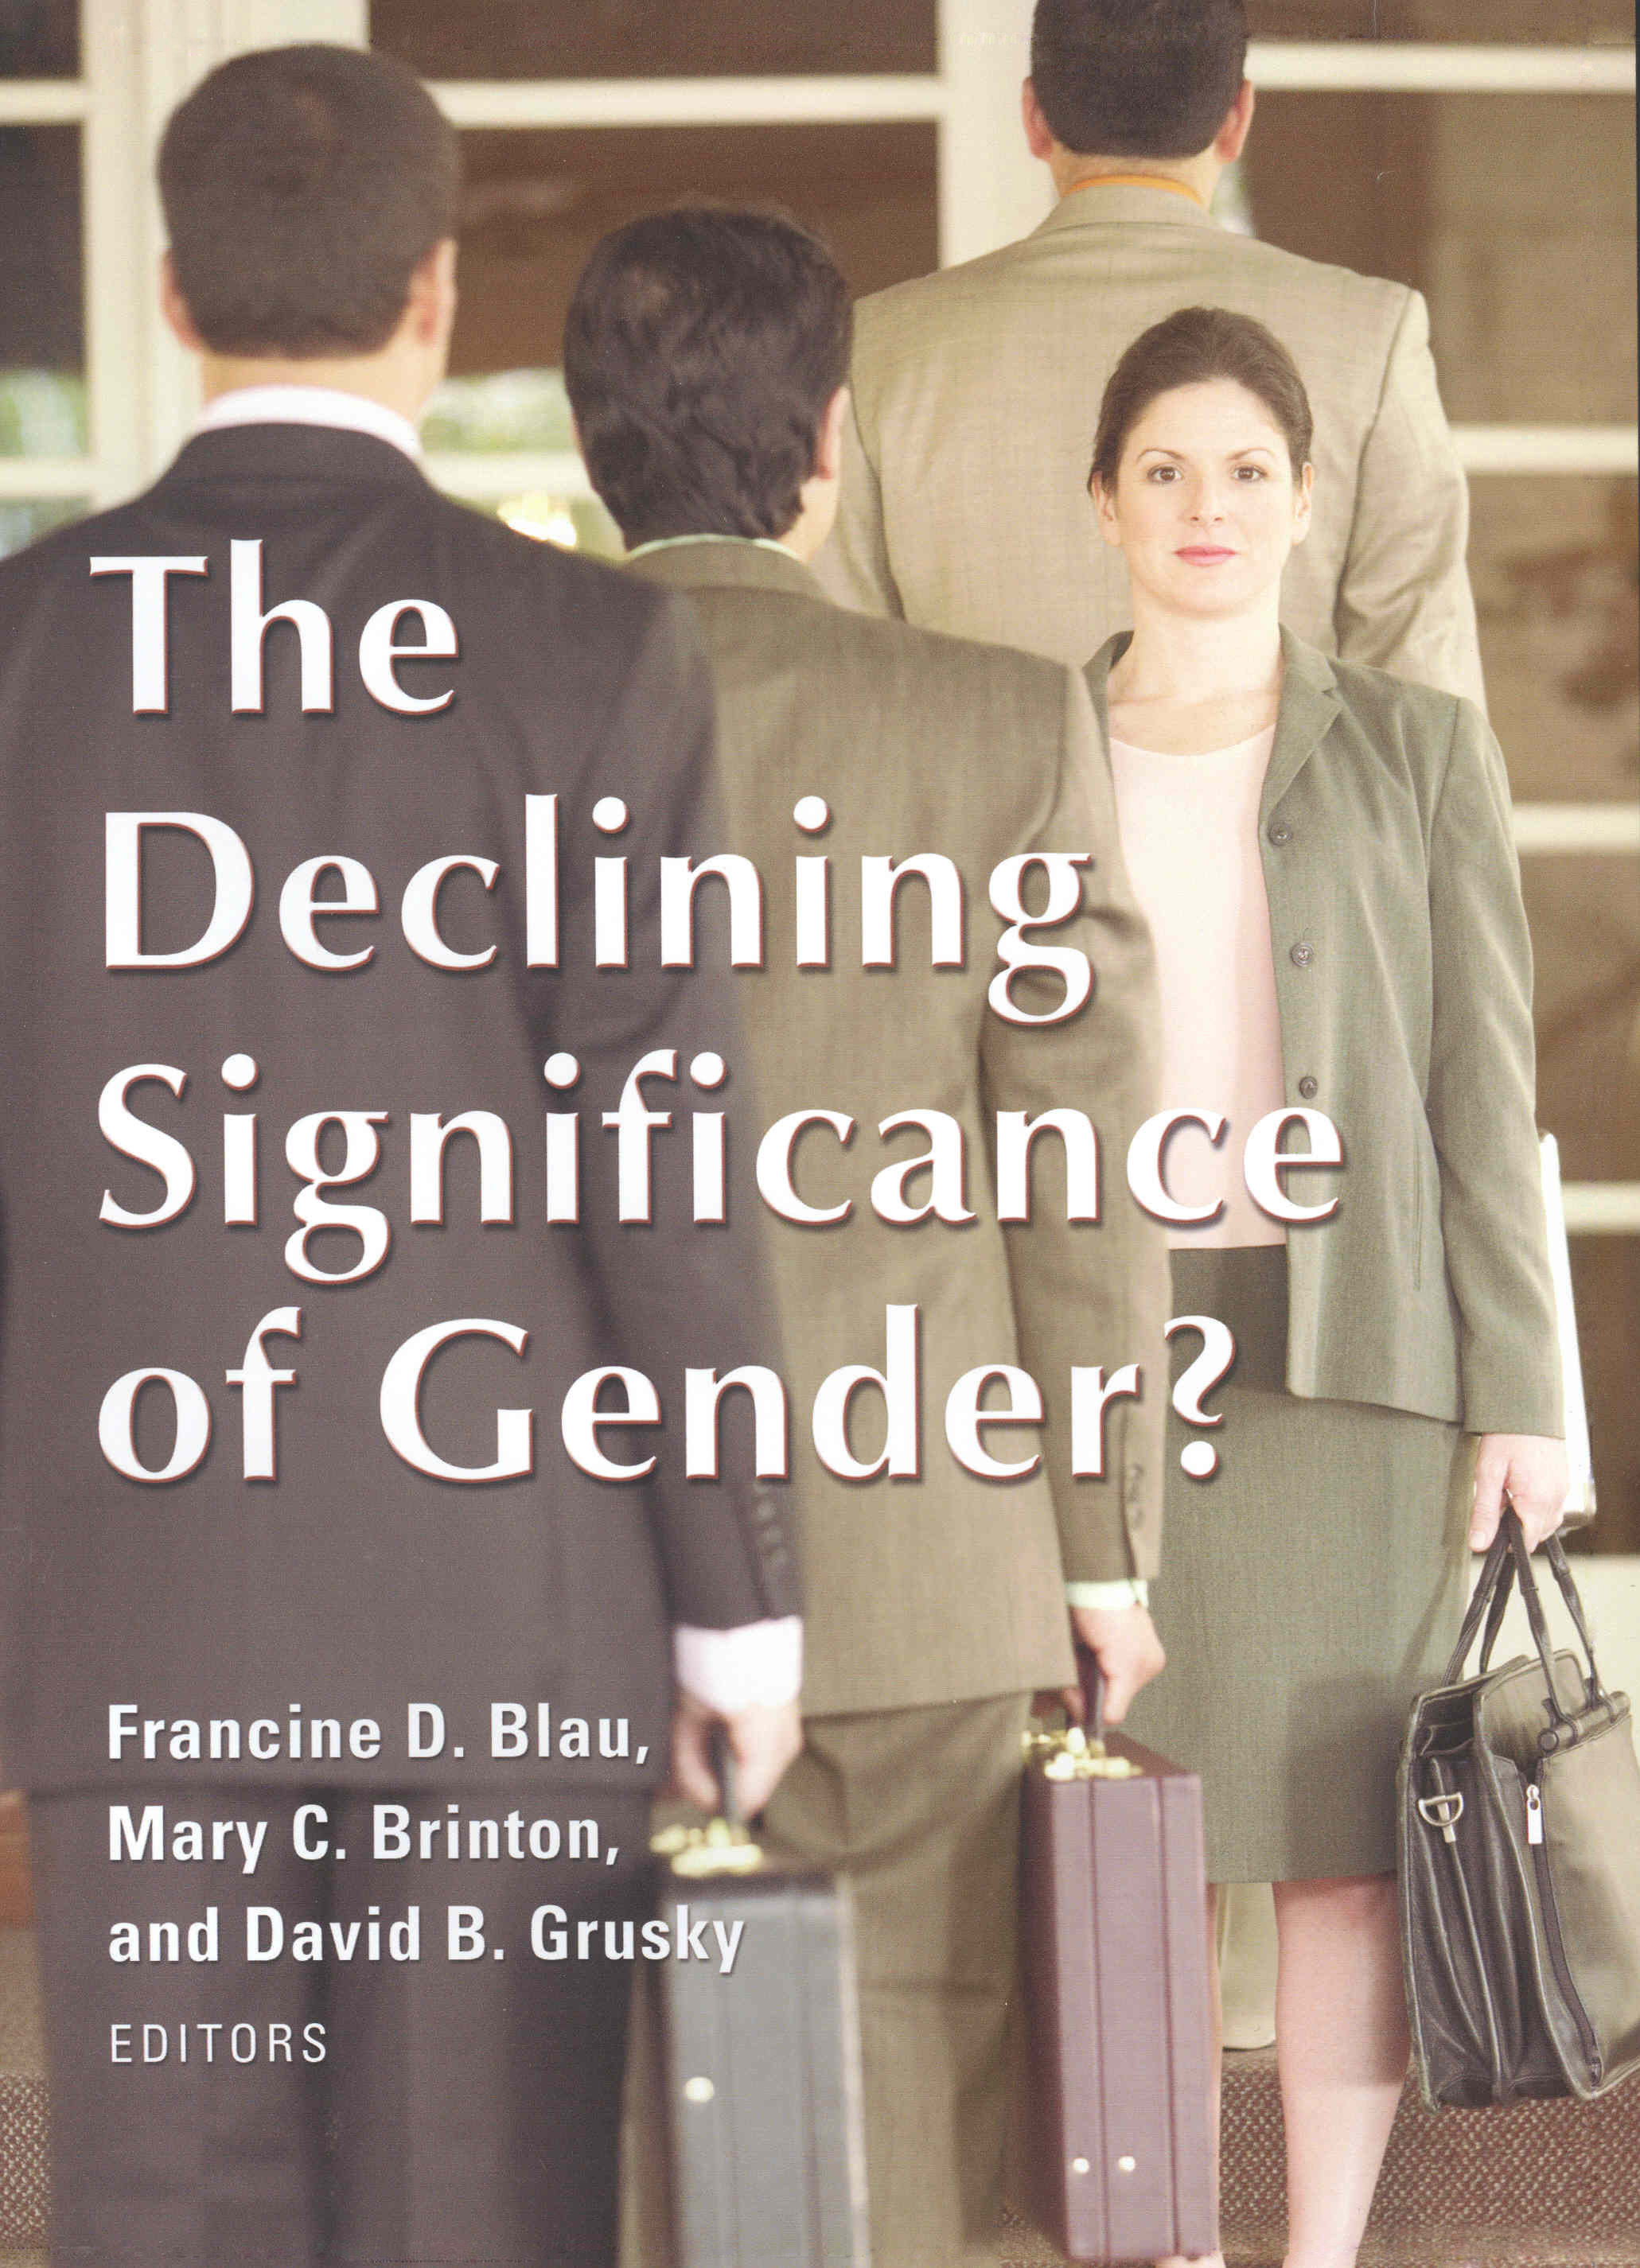 The Declining Significance of Gender?